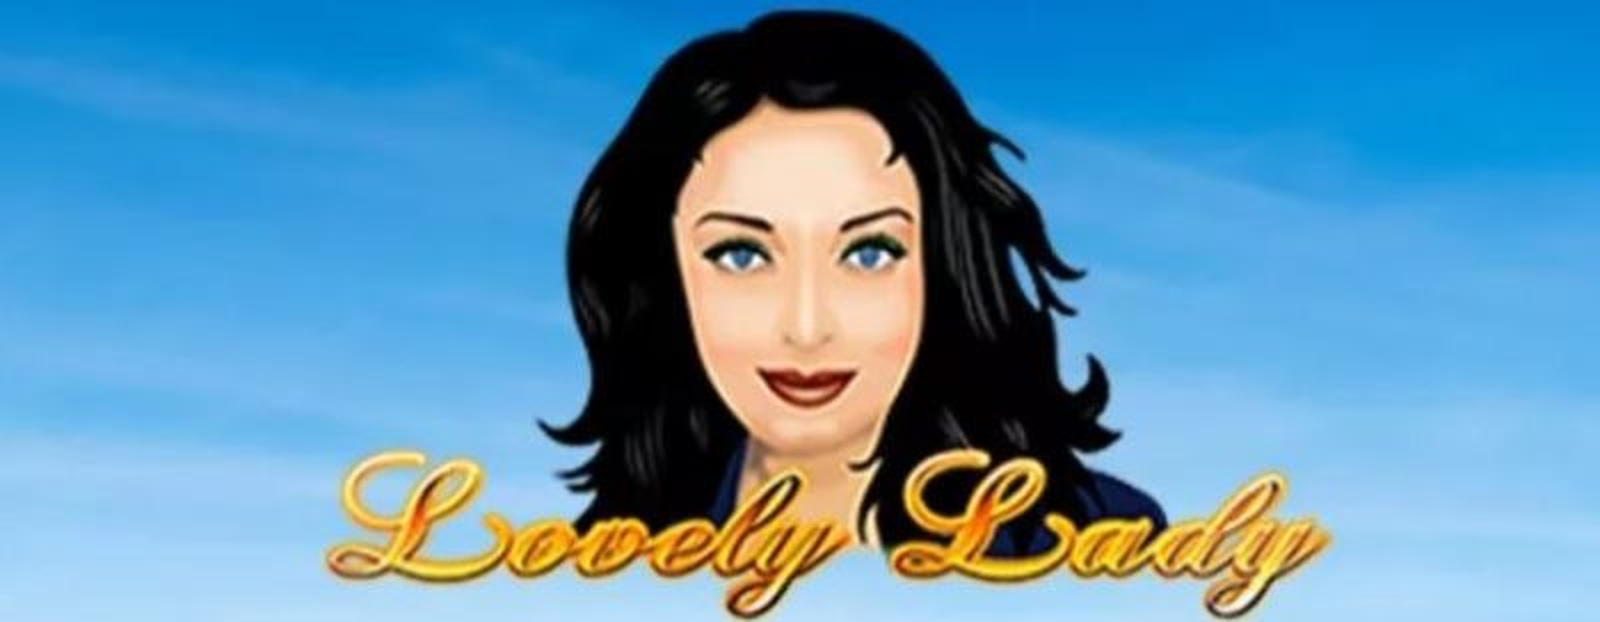 The Lovely Lady Online Slot Demo Game by Amatic Industries